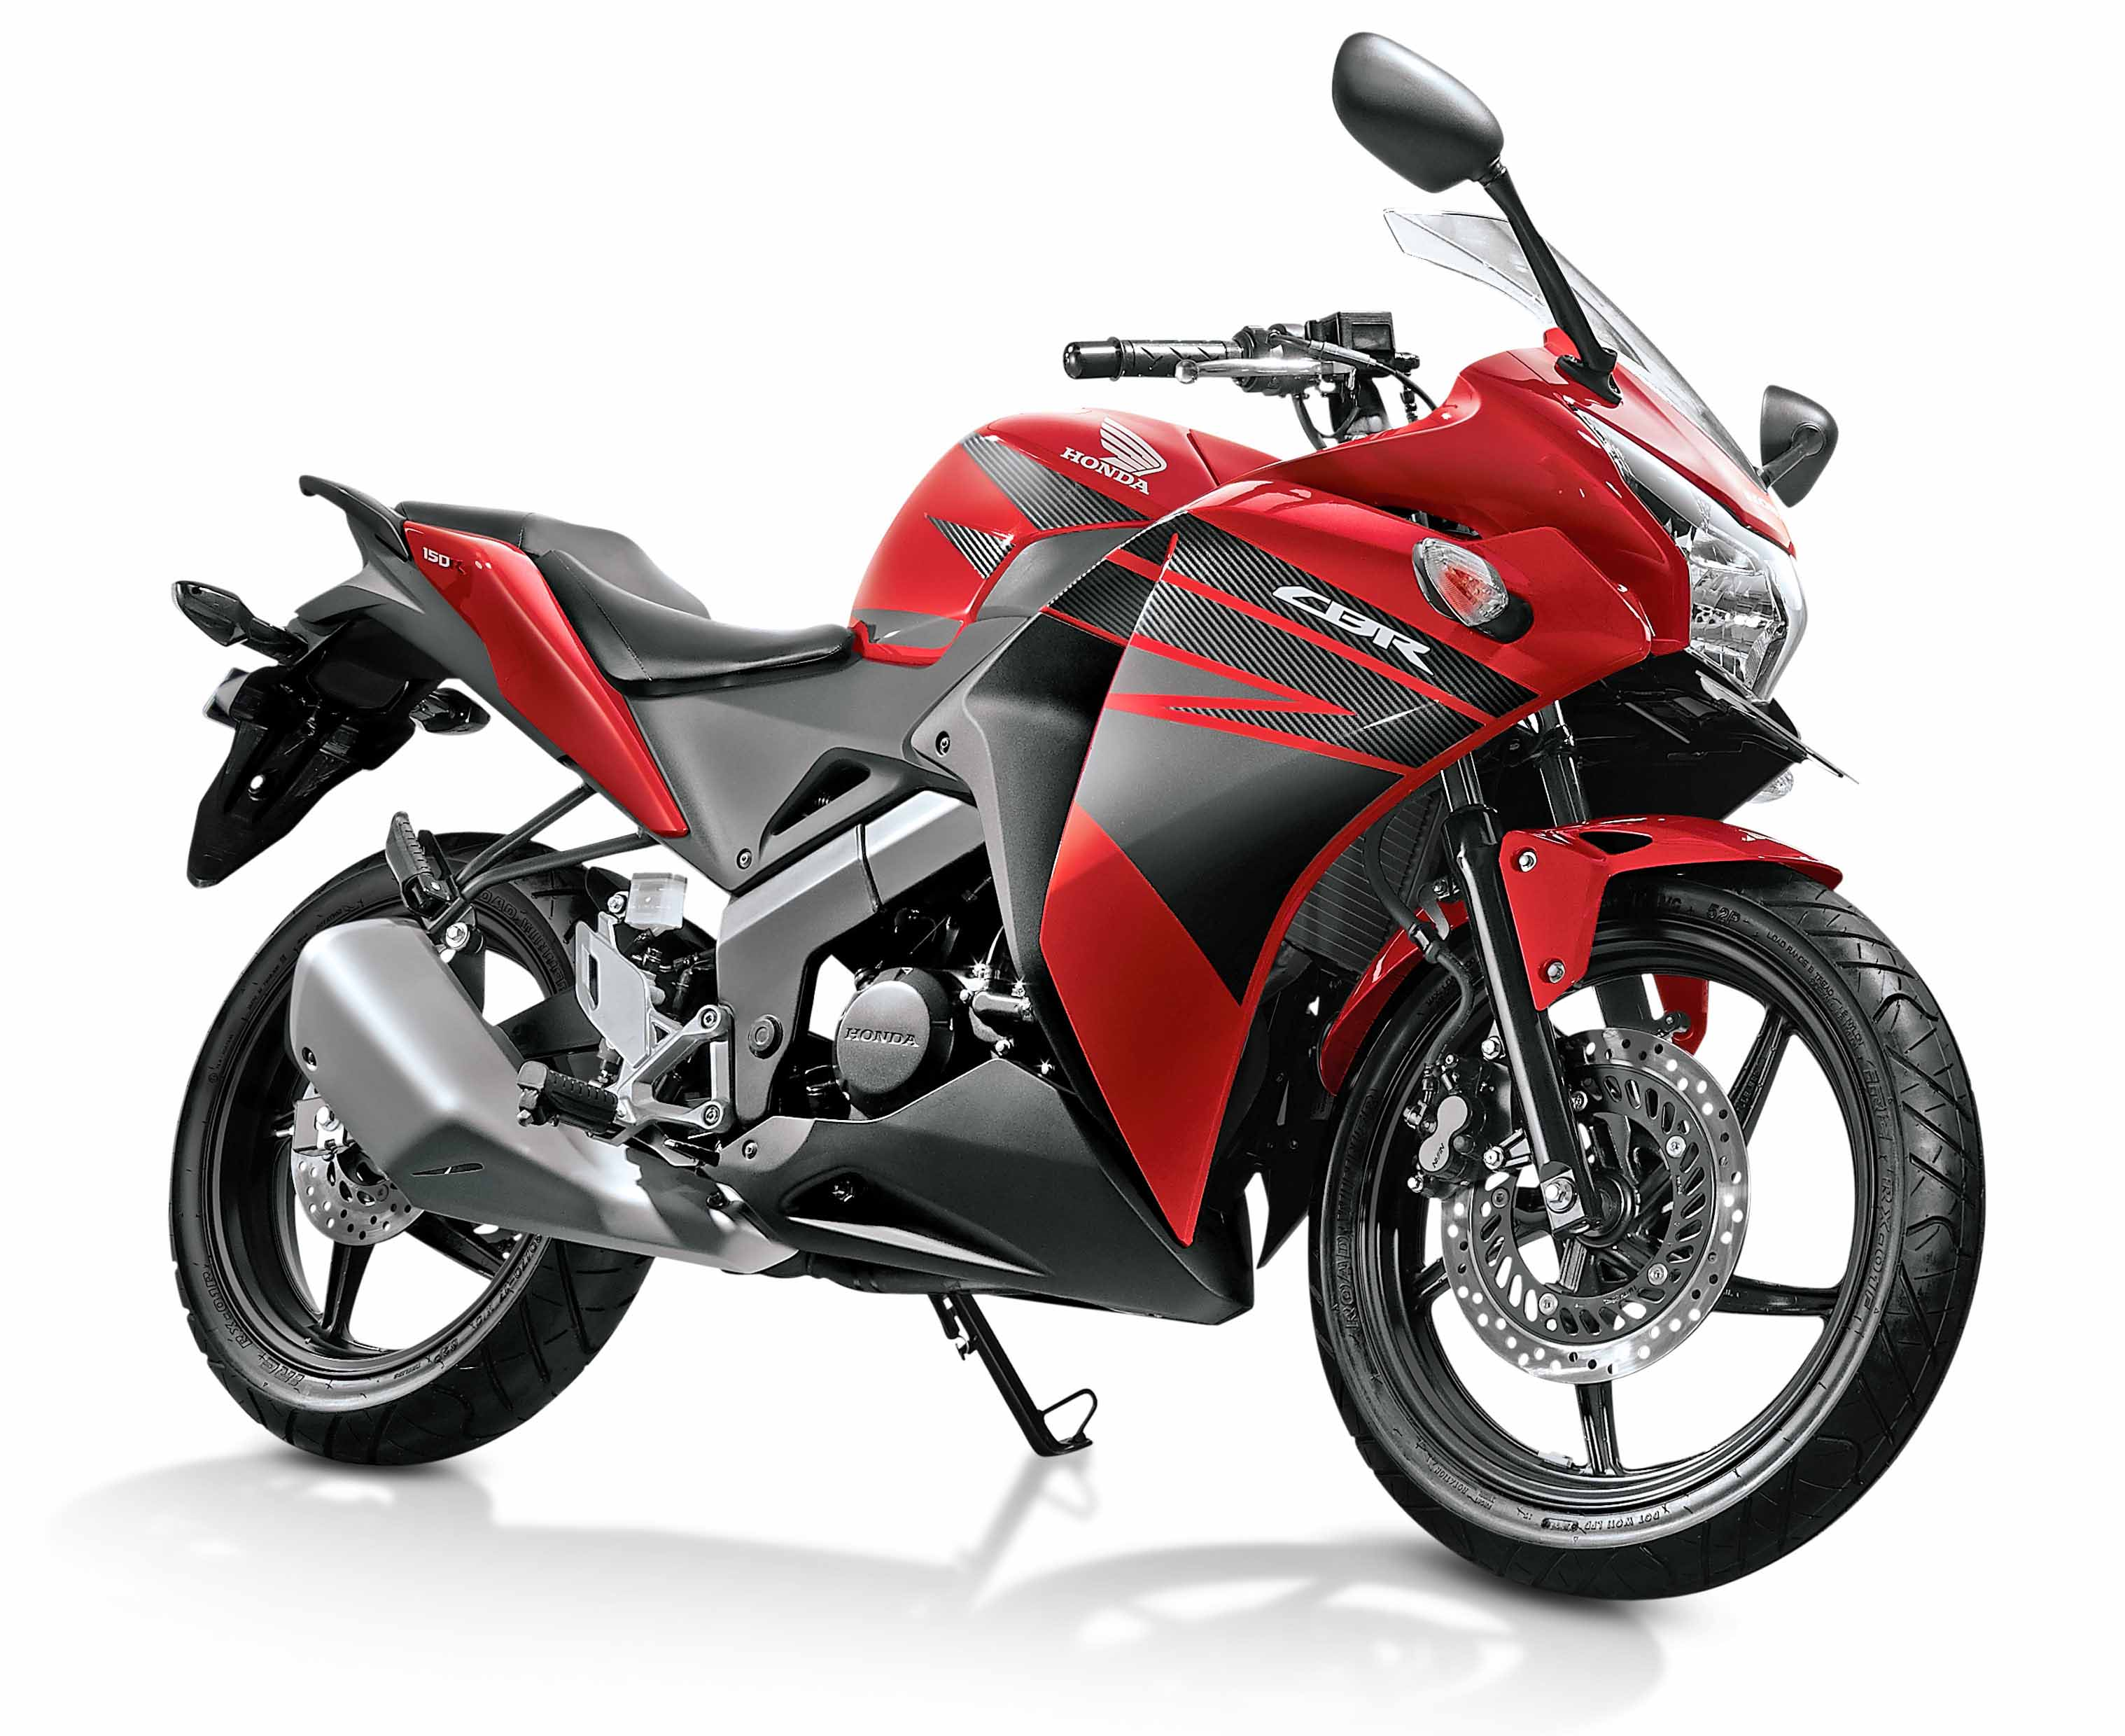 Tampilan Baru Cbr150r Sonic 150r Aggresso Matte Black Tangerang Honda Three Colors Millennium Red Asteroid Metallic